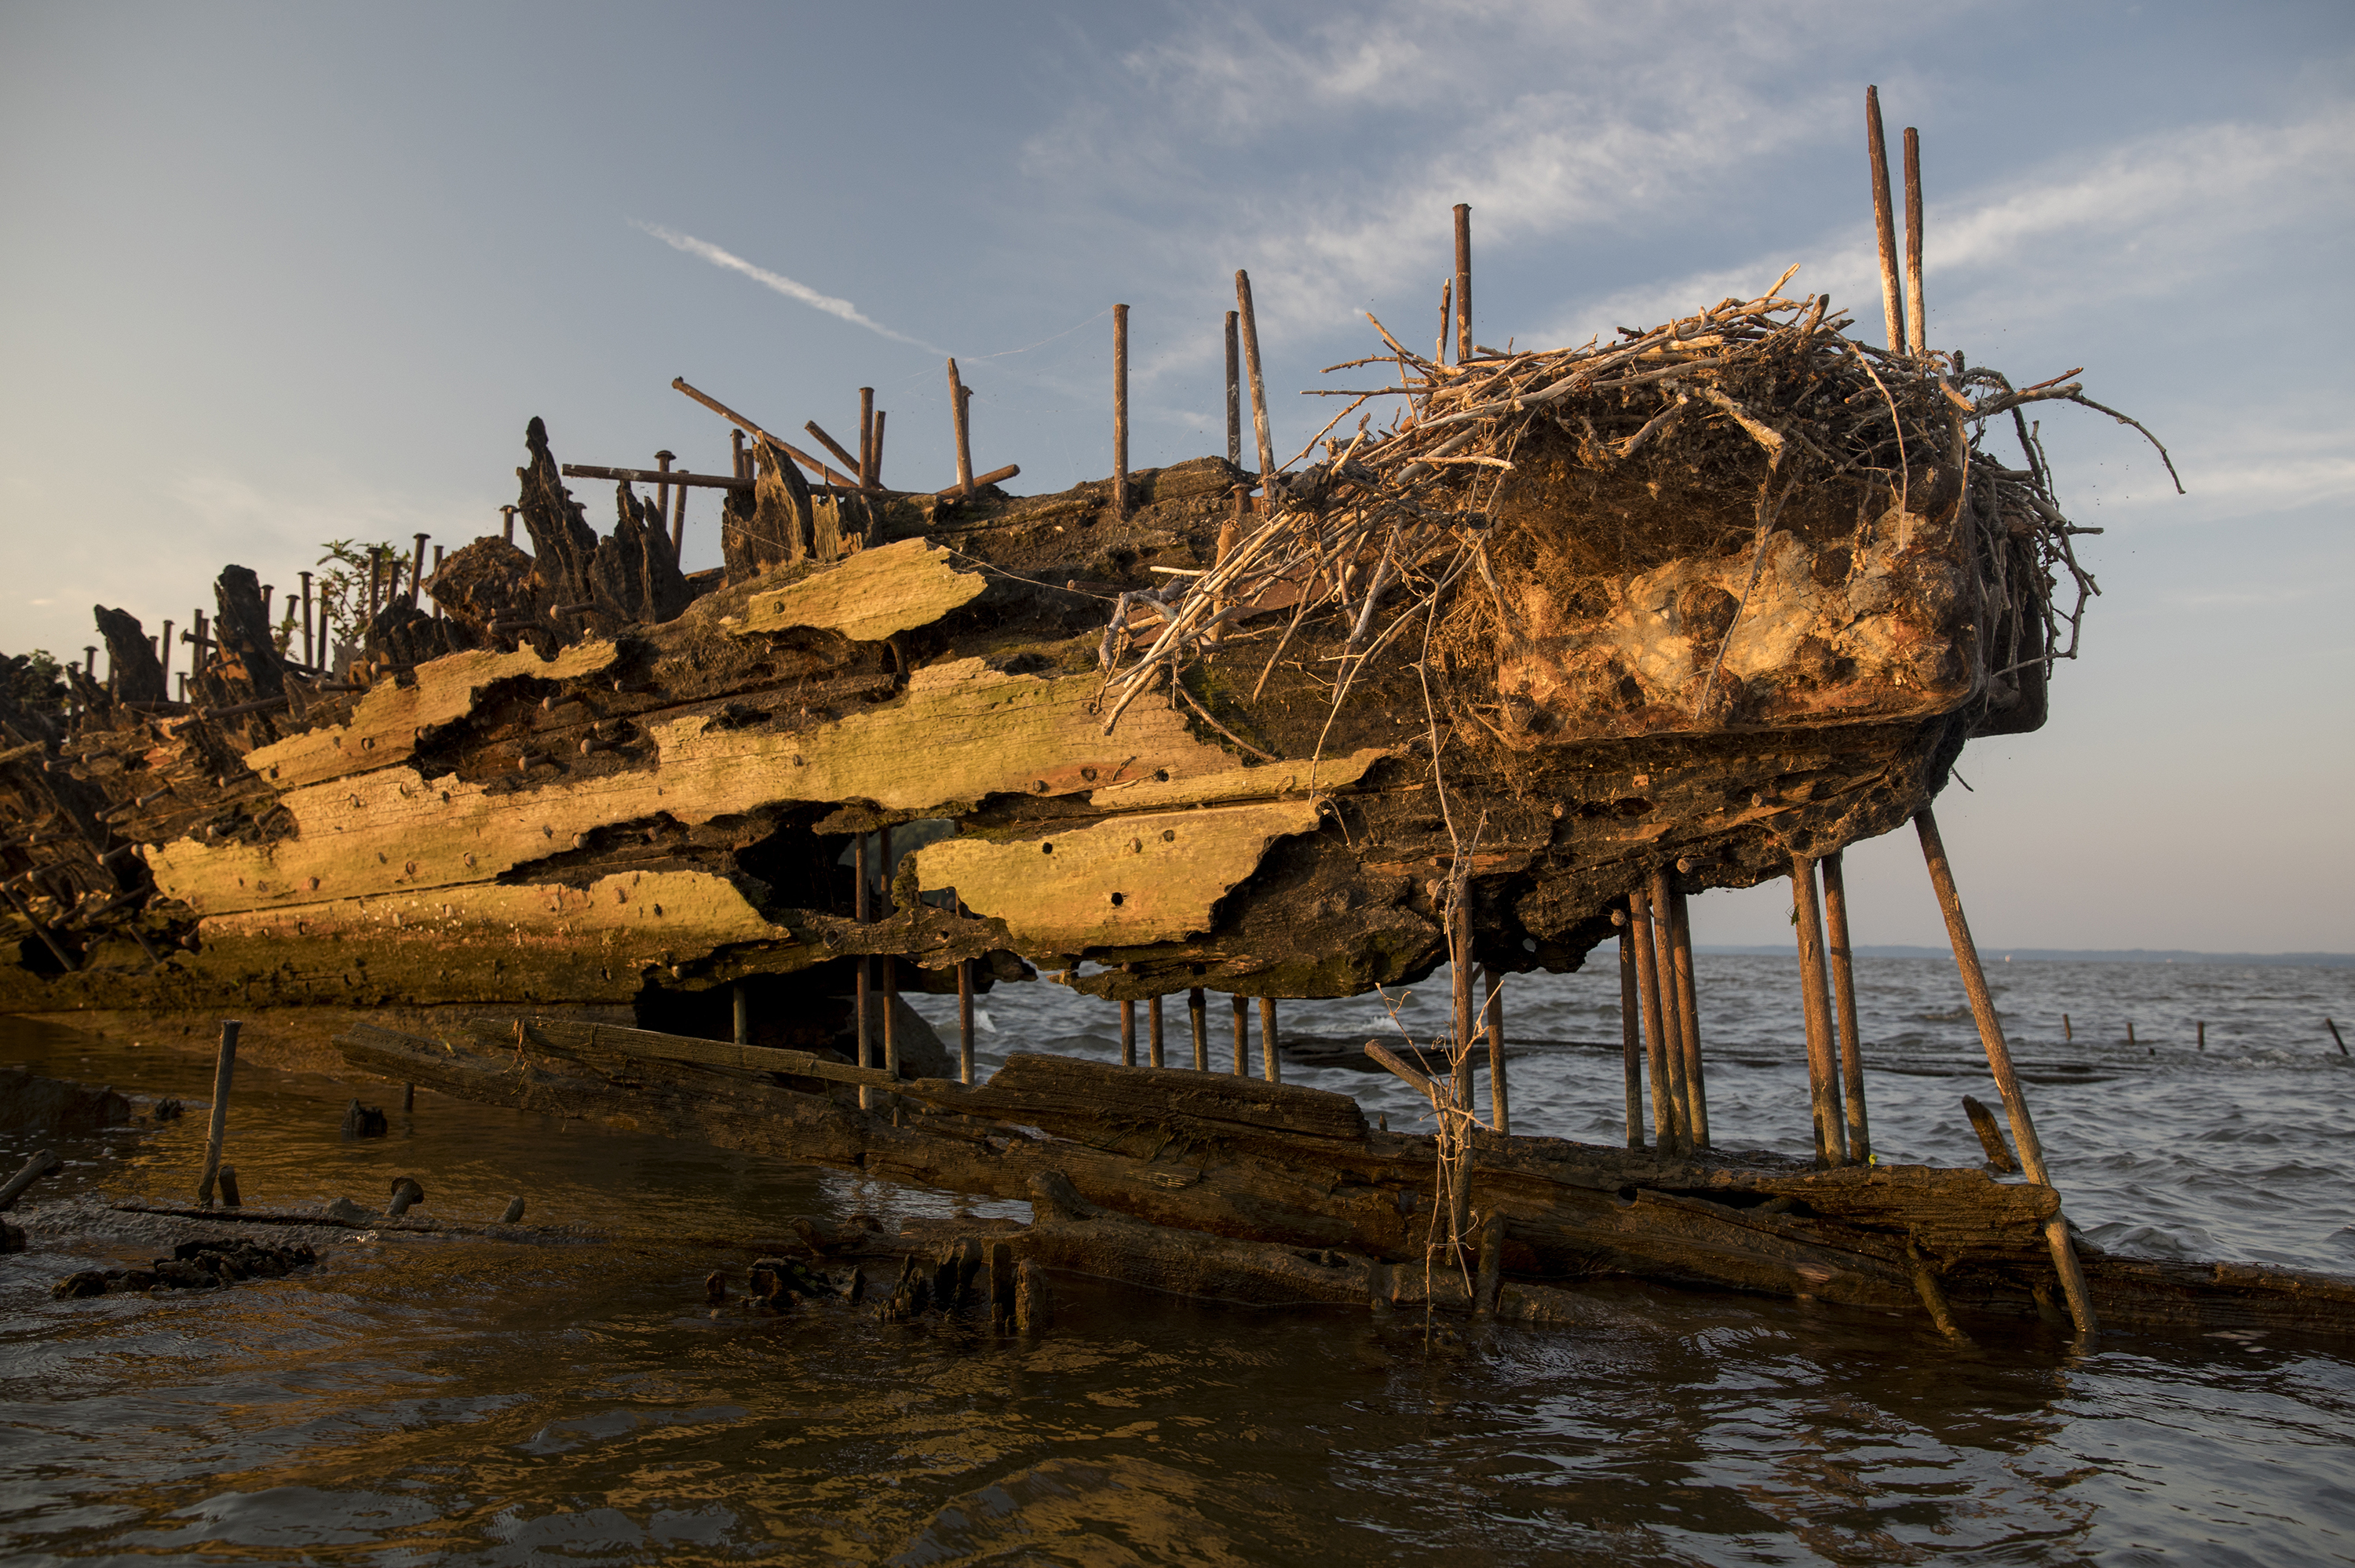 New National Marine Sanctuary For Shipwrecked Vessels Is A 'Time Capsule'